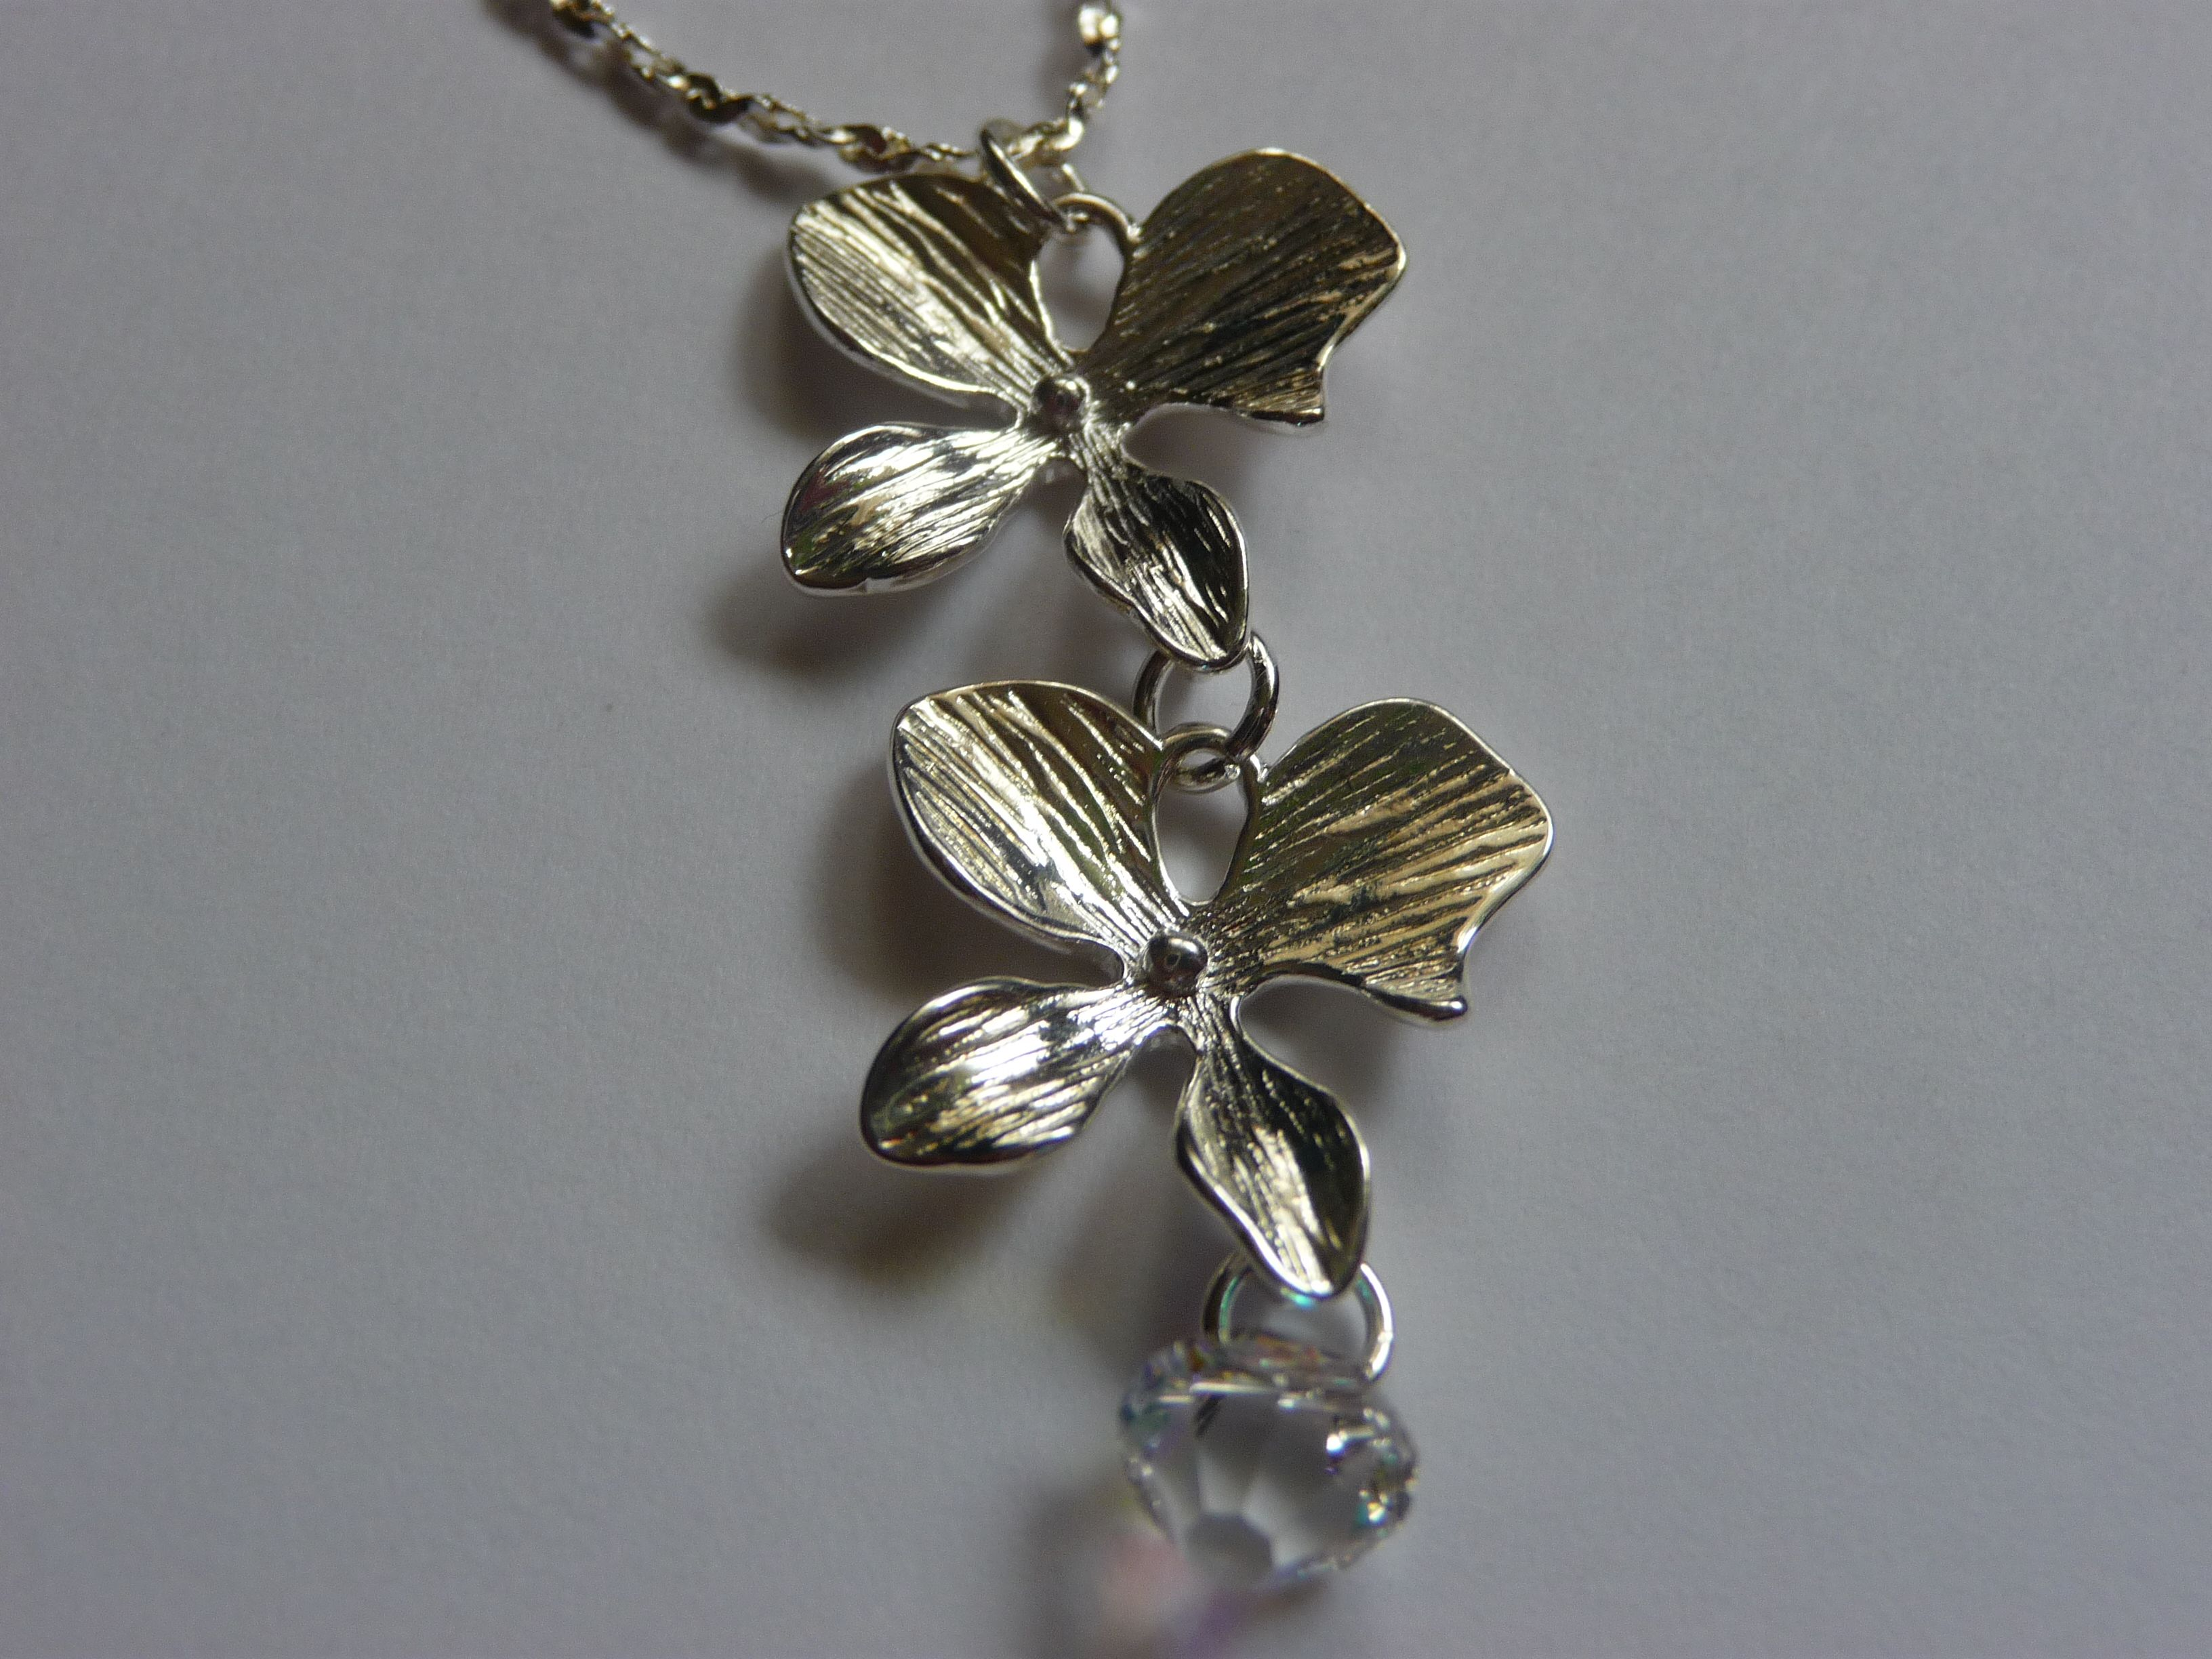 This lovely orchid design offers a beautiful Swarovski crystal for a little added sparkle to this dainty necklace. The two orchid charms are sterling silver plated and are hung from an 18 inch sterling silver plated chain. This necklace is easily worn casual or dressy.